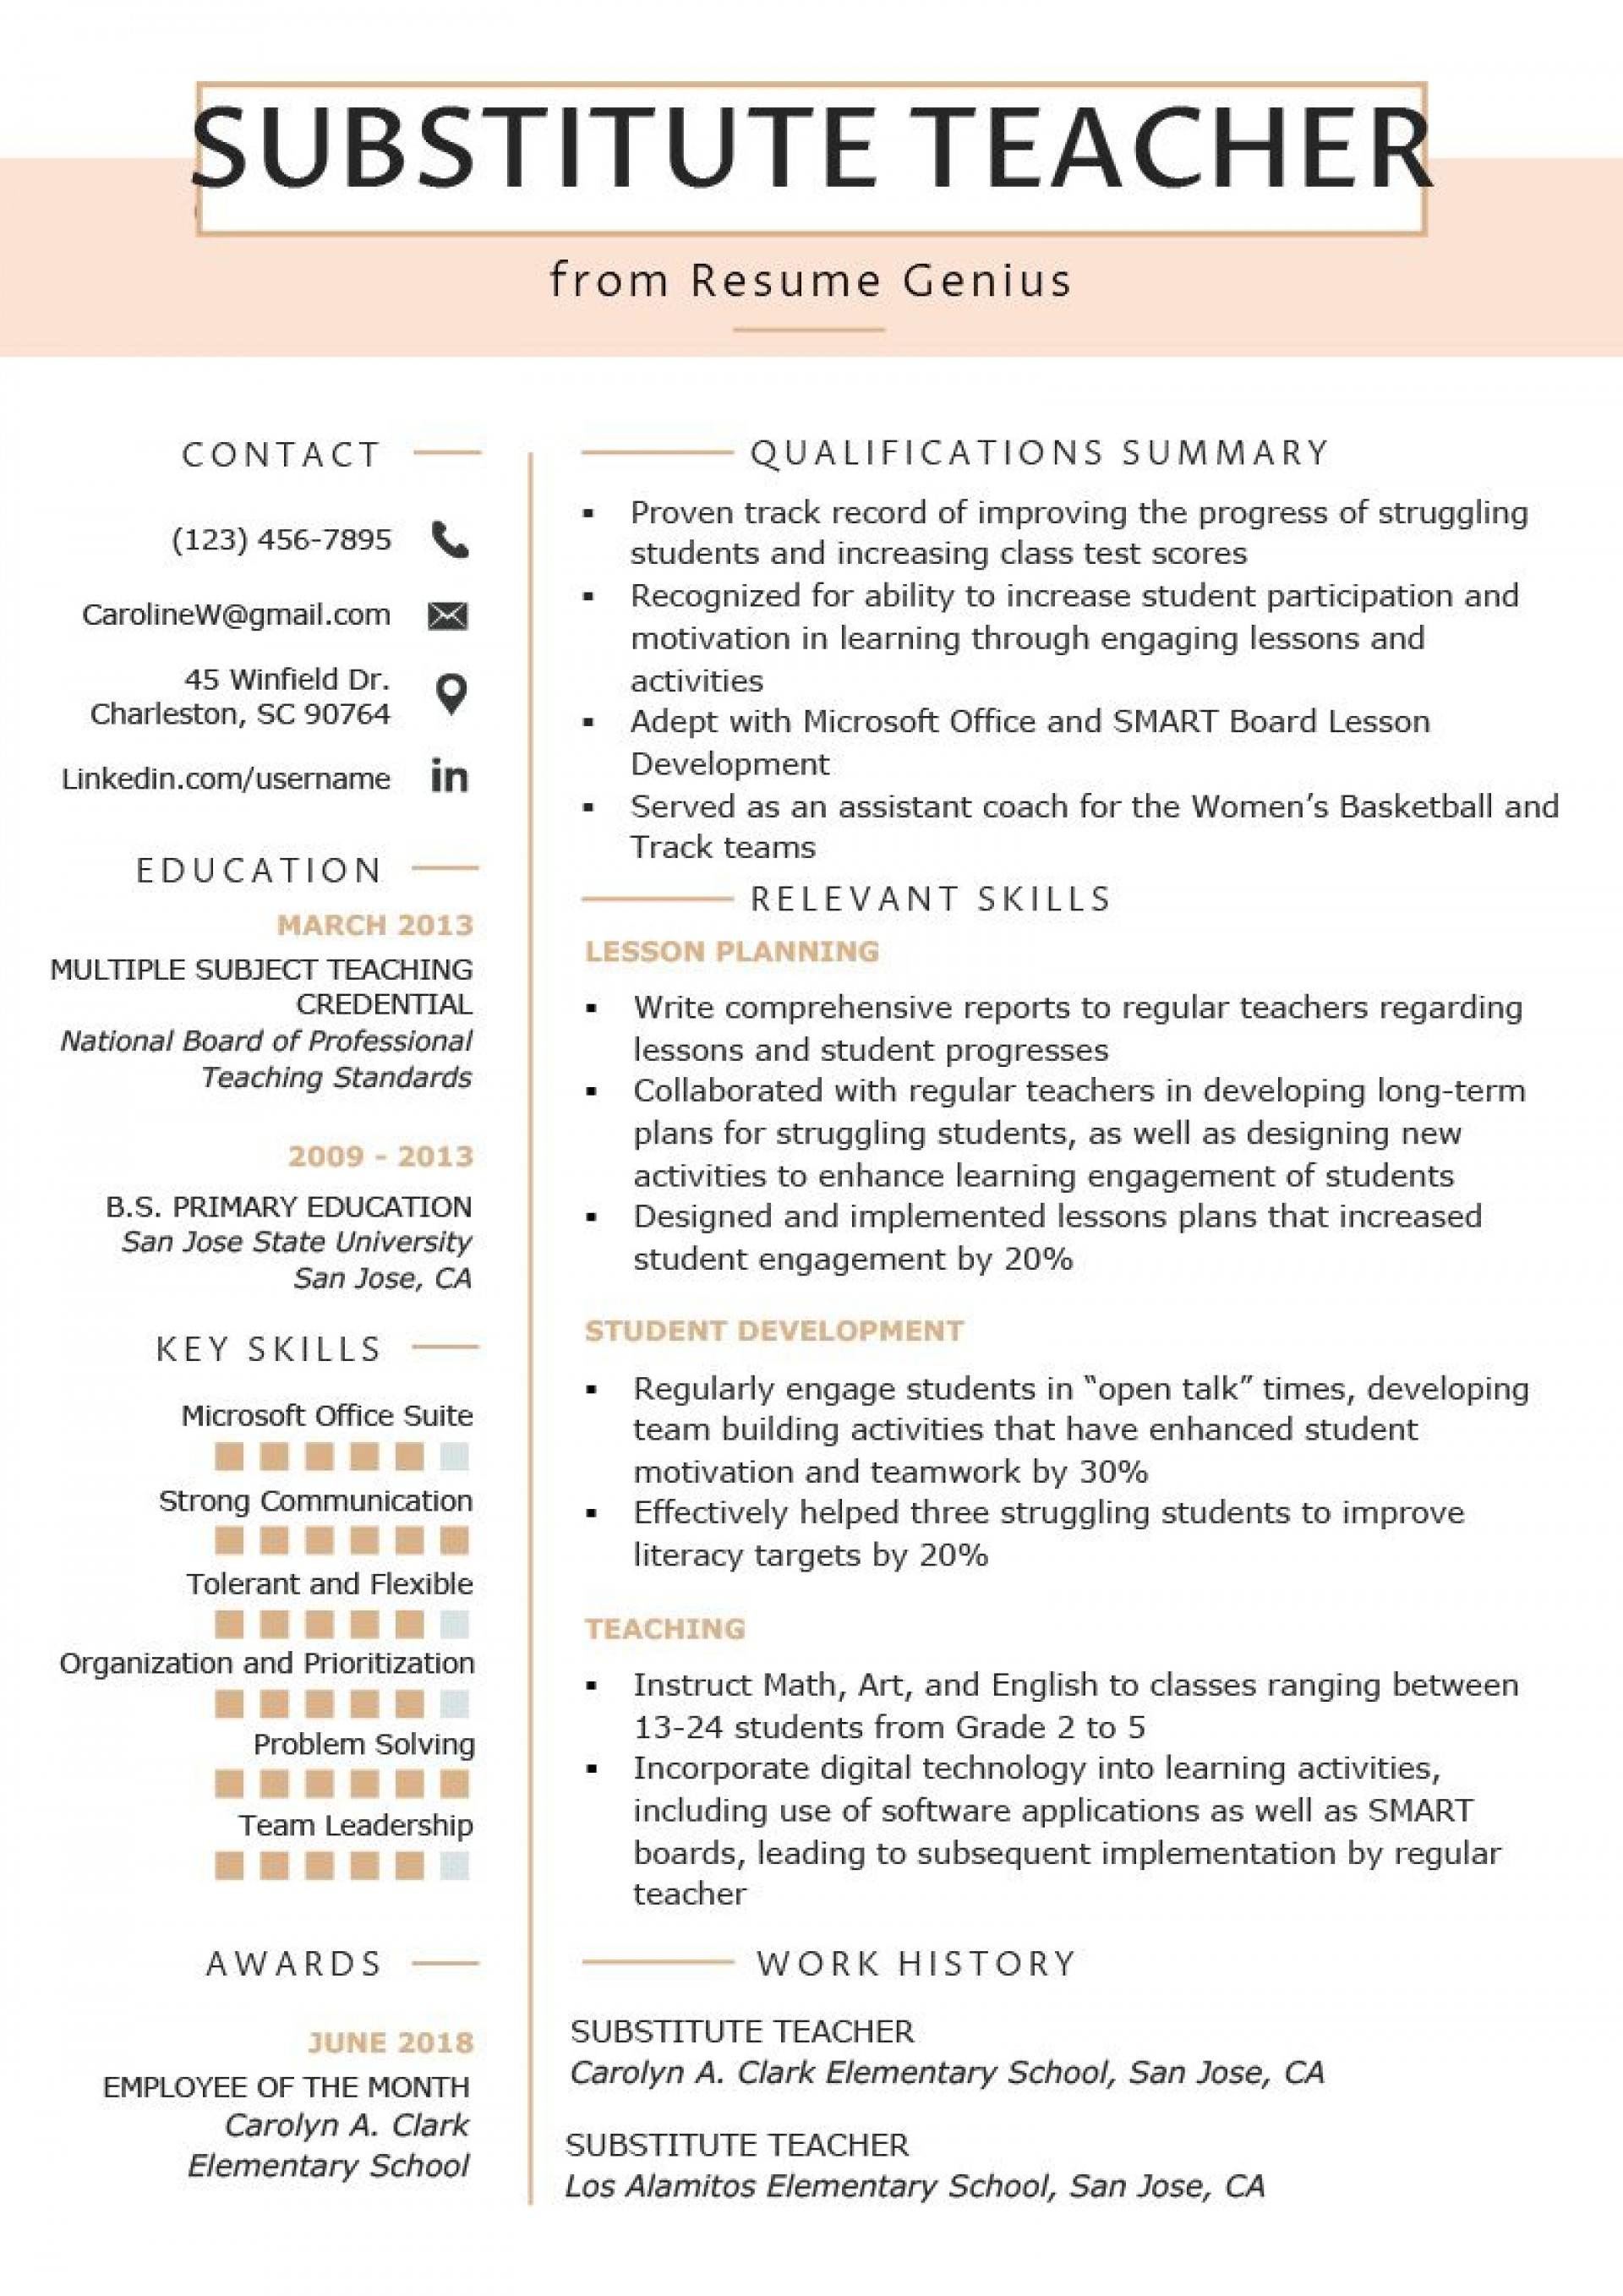 002 Stunning Resume Template For Teaching High Def  Cv Job Application Assistant In Pakistan1920